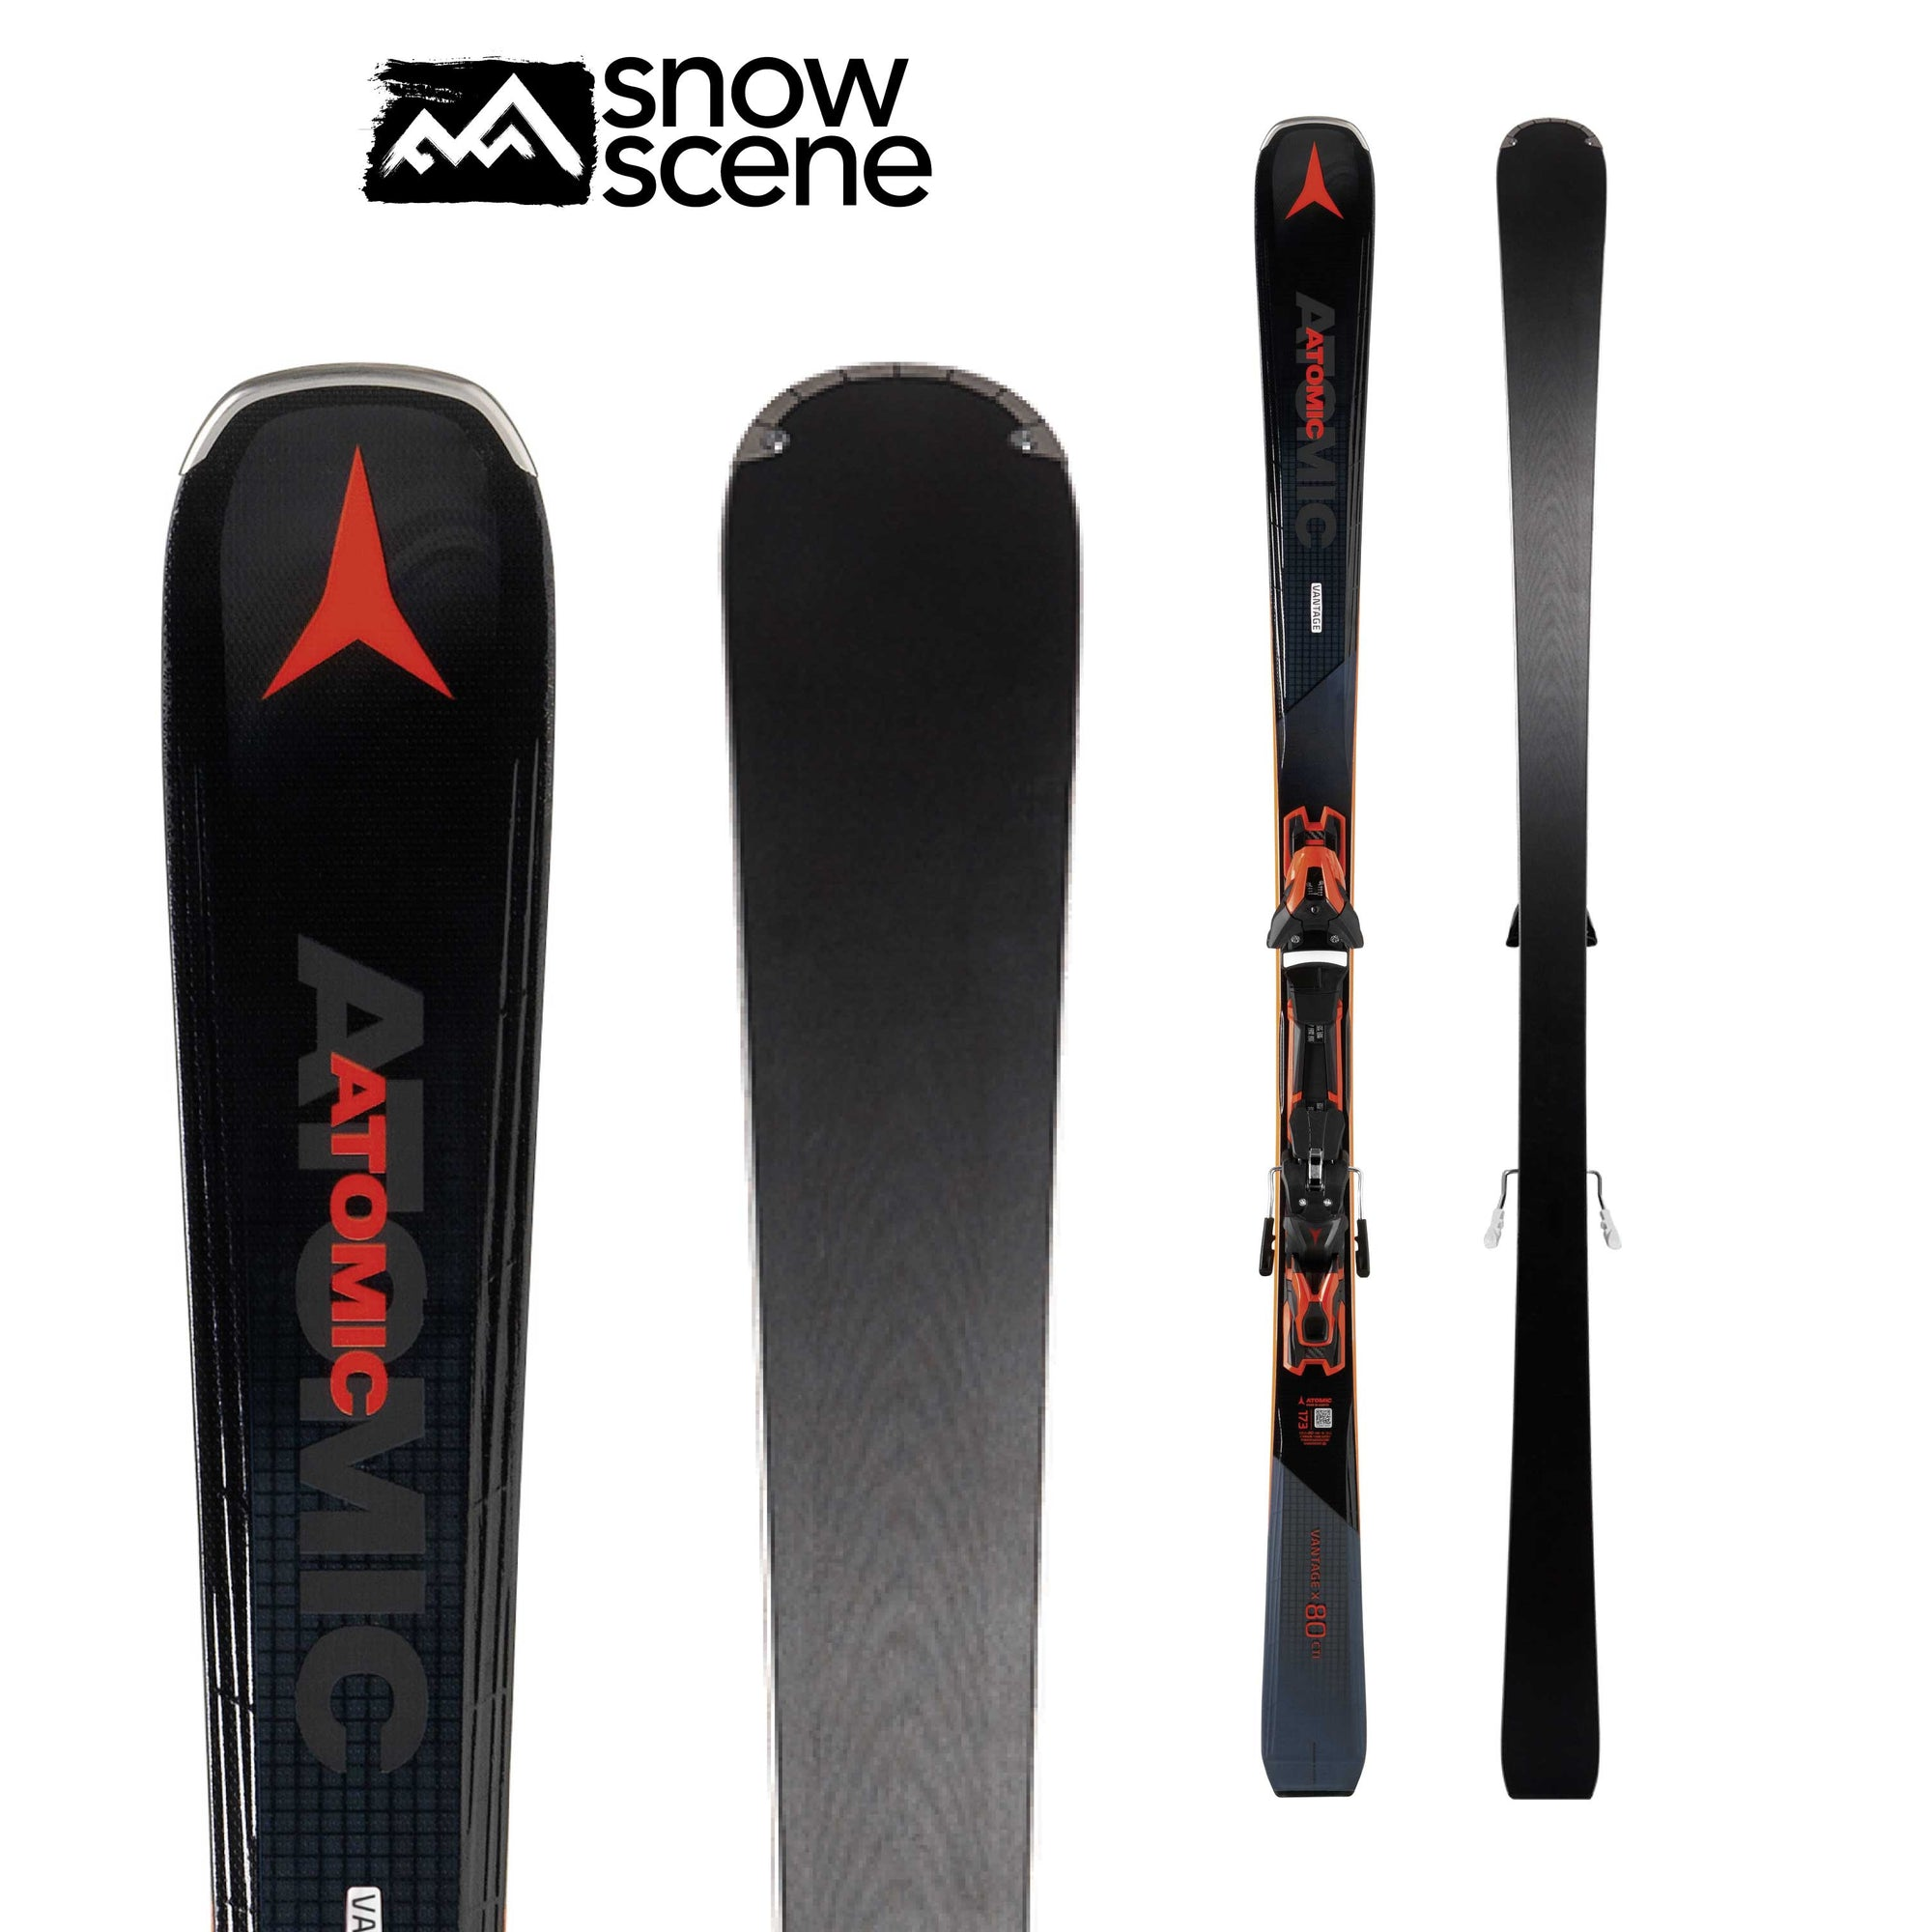 2019 Atomic Vantage X 80 CTI- Shop Skis and snow gear online nz - snowscene